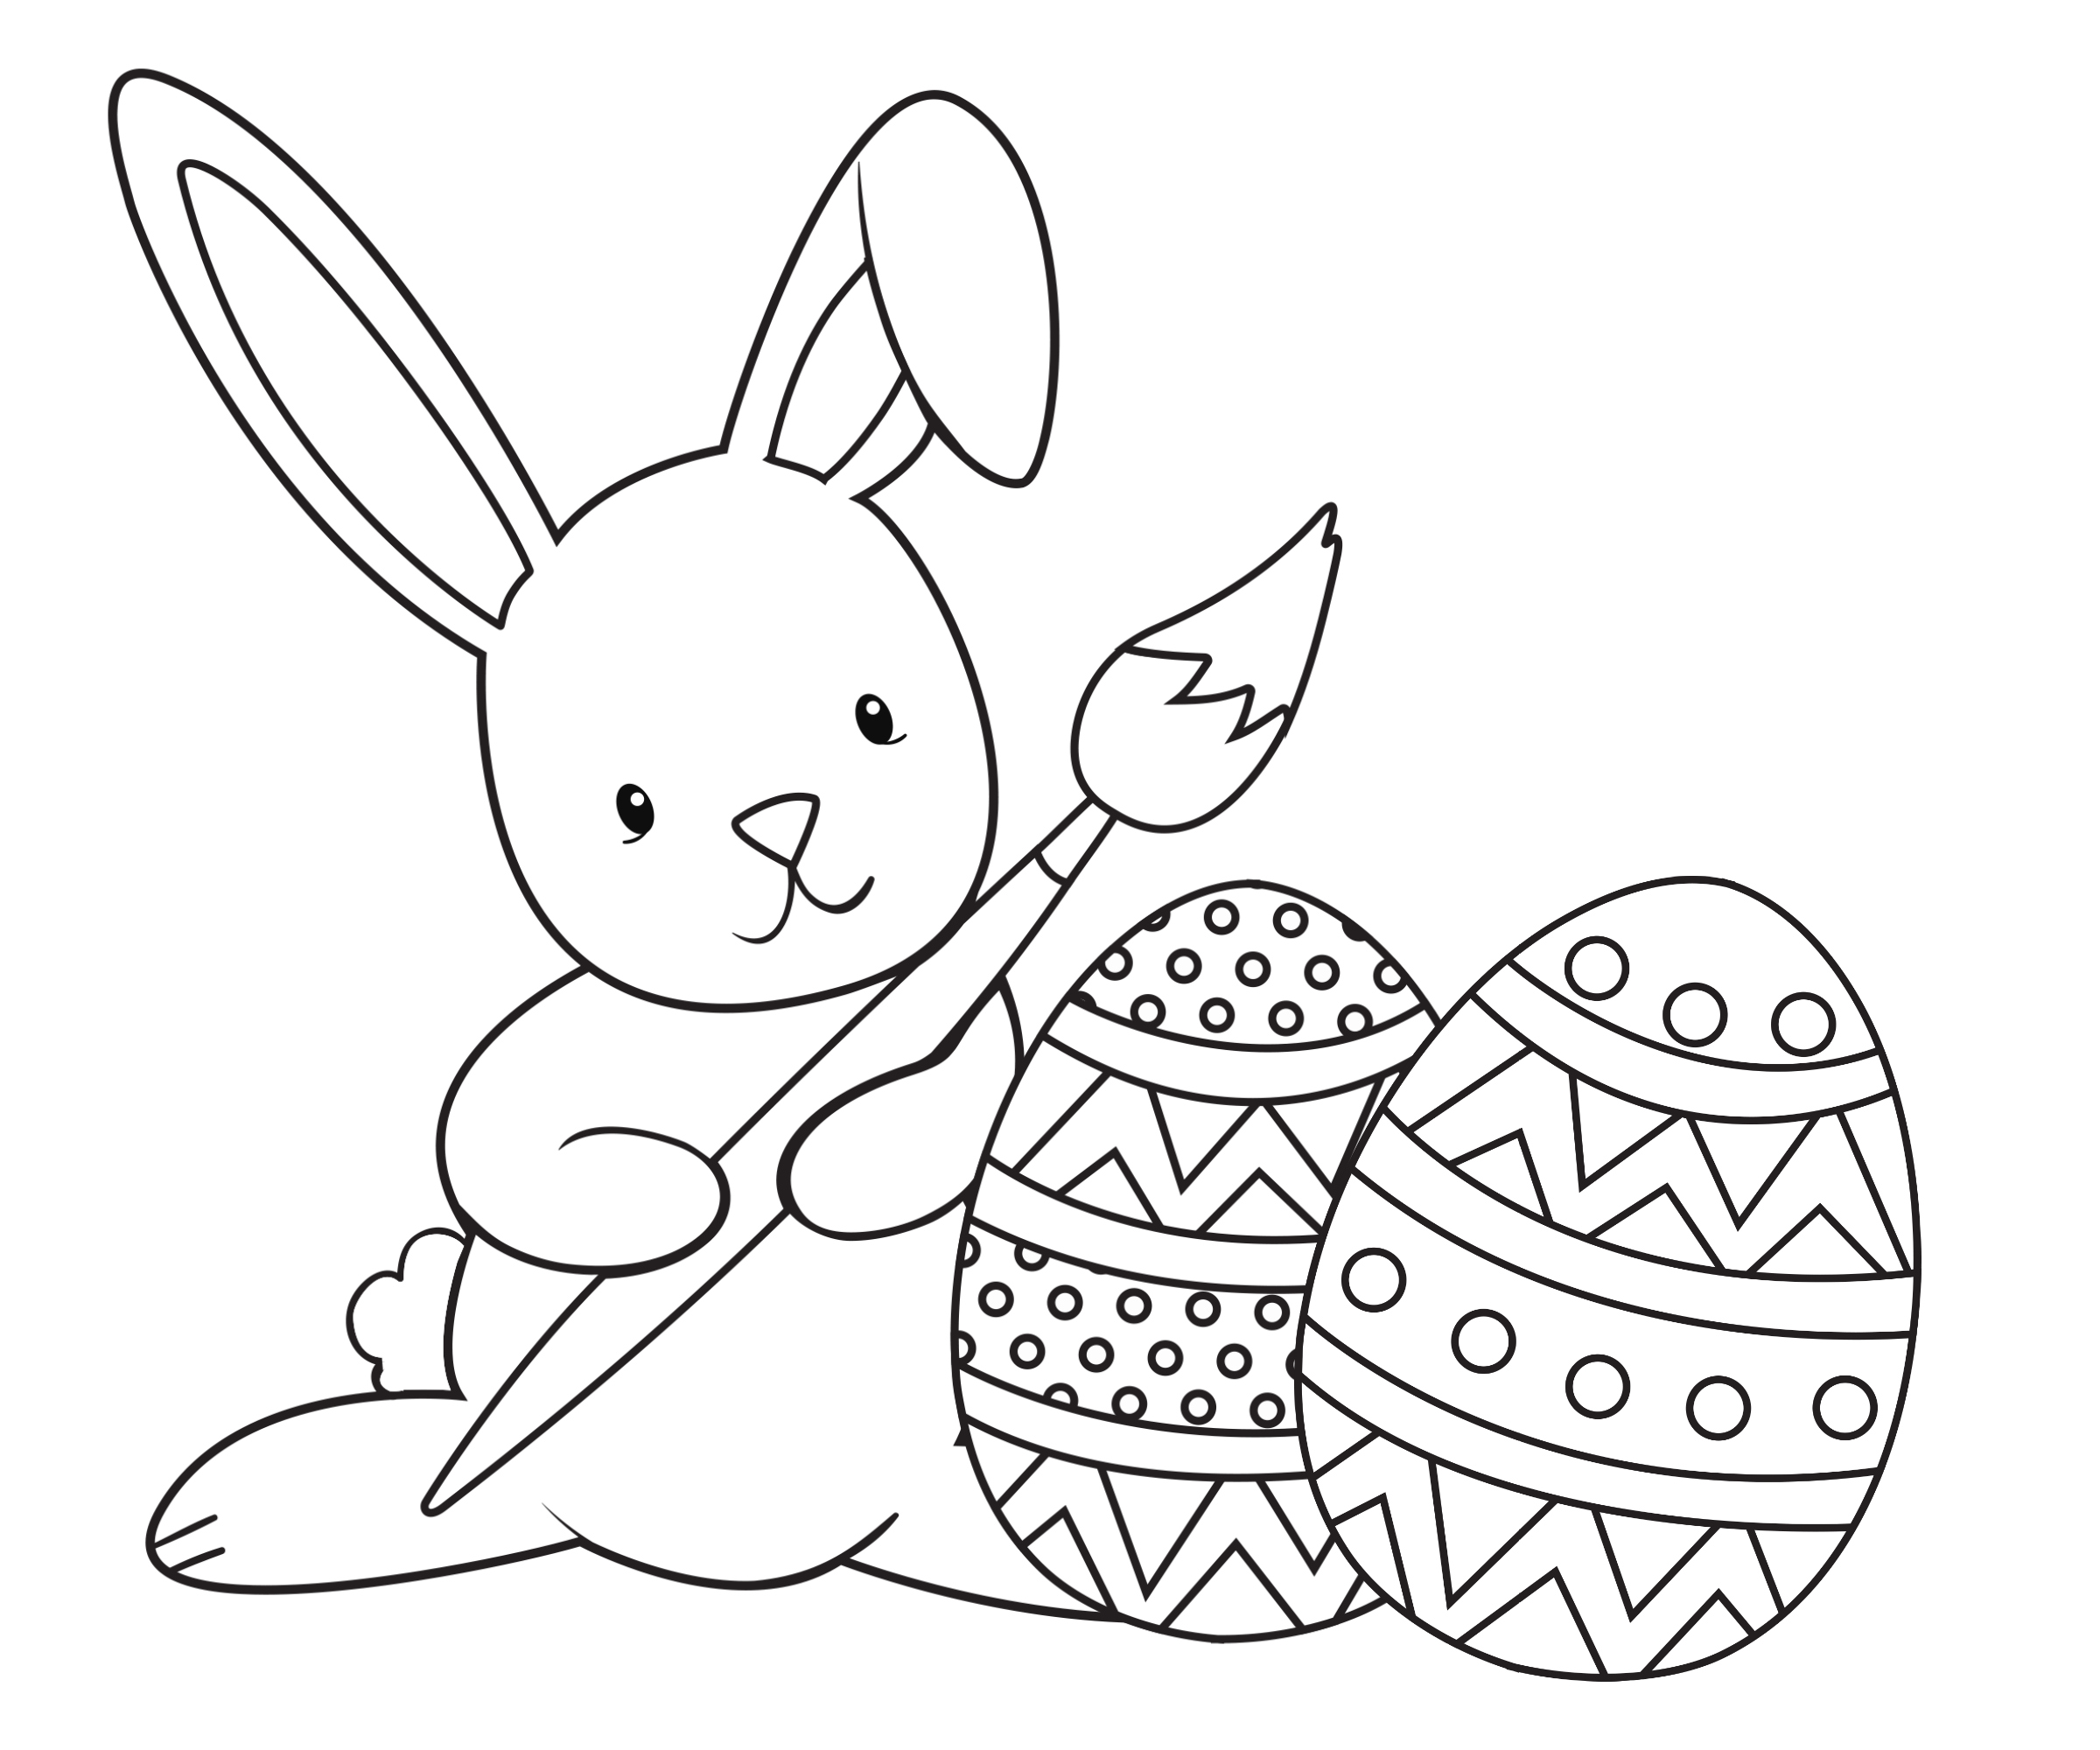 printable coloring pages easter eggs - photo#31